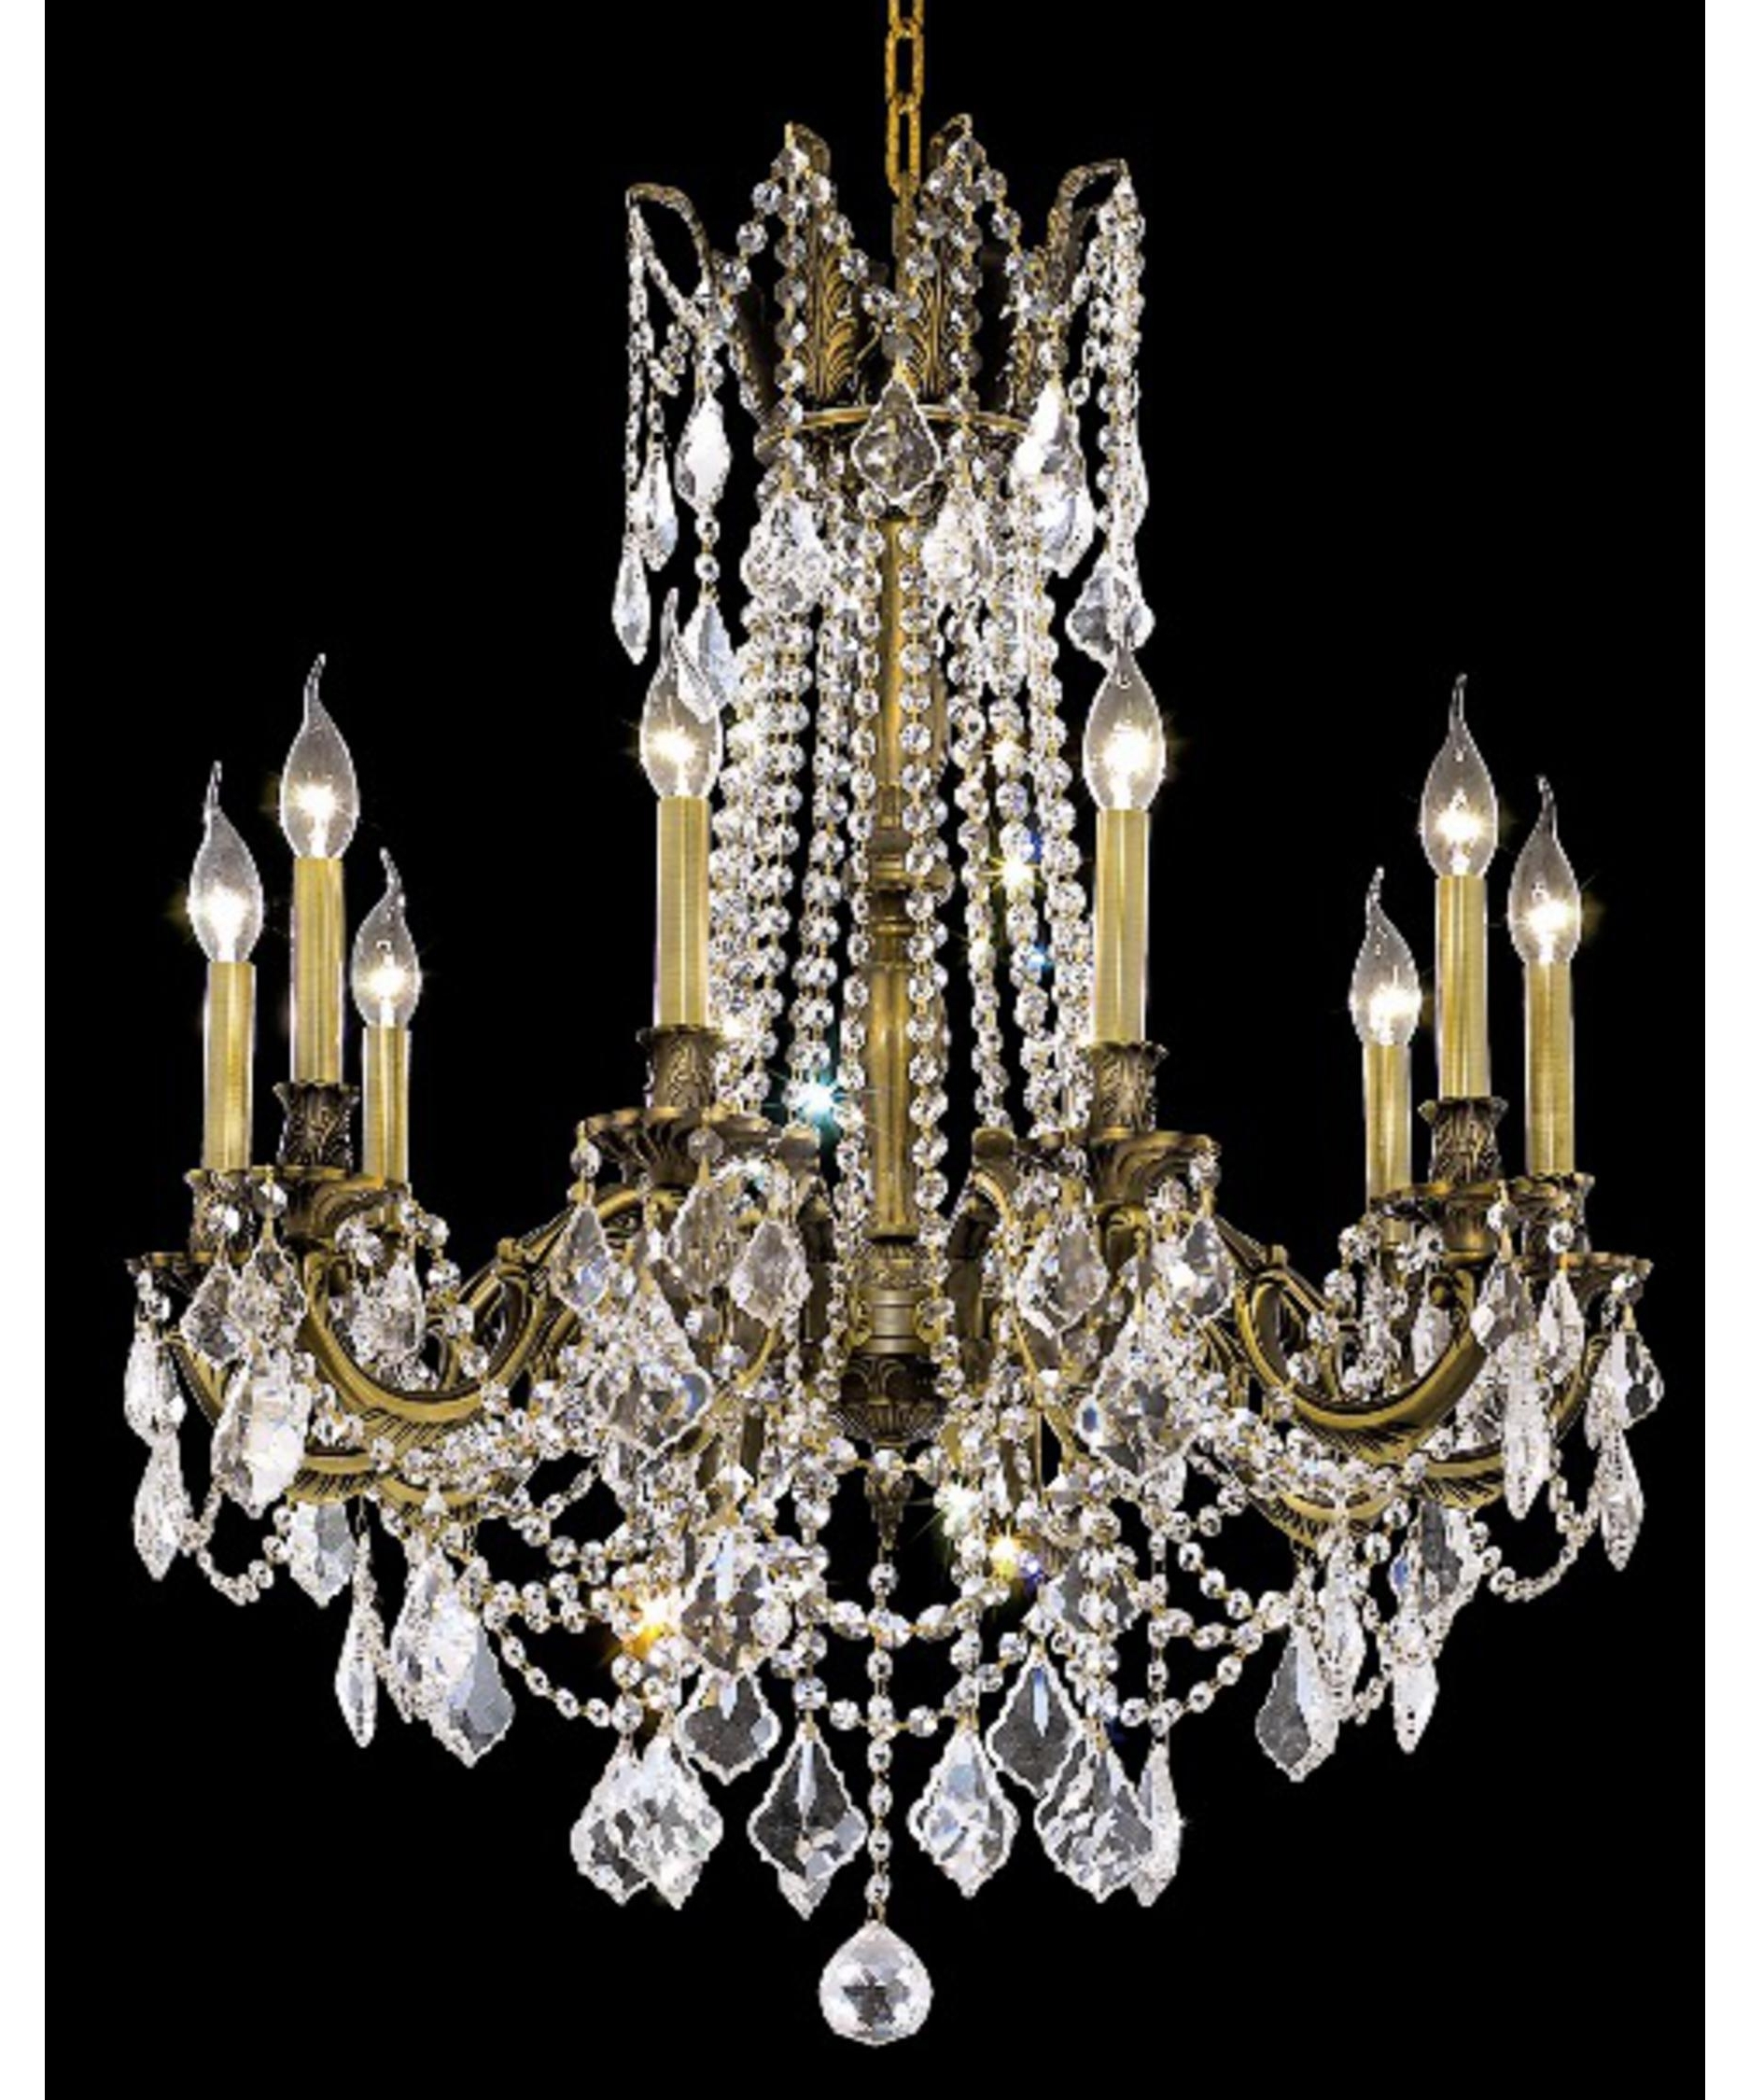 2018 Traditional Chandeliers For Photo Of Lighting Chandeliers Traditional Lighting Chandeliers (View 1 of 20)